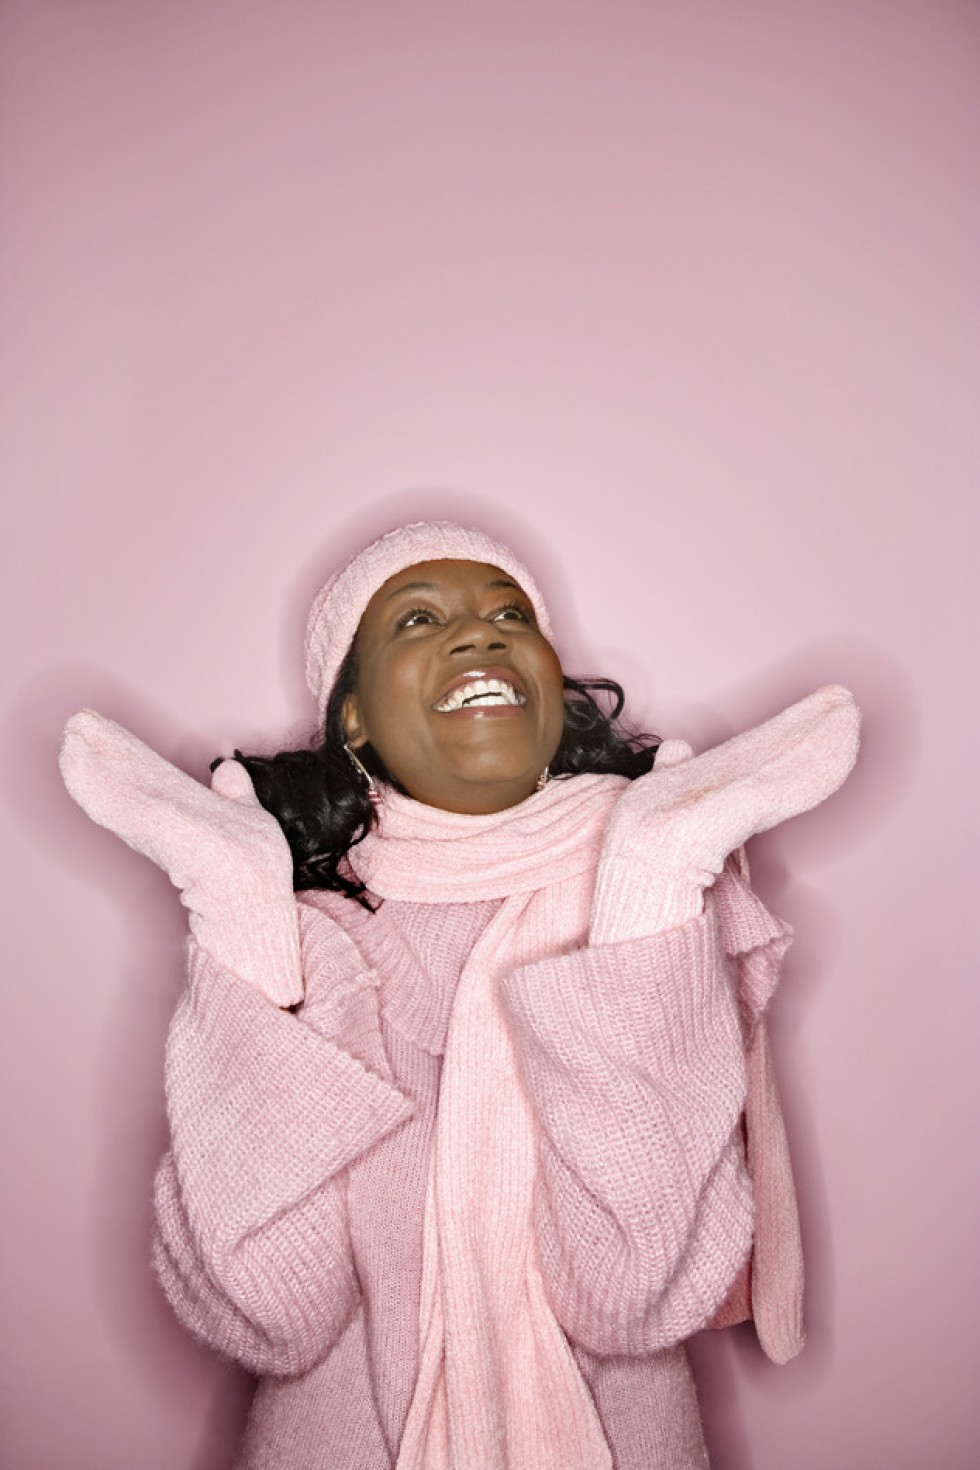 Smiling woman in winterwear.